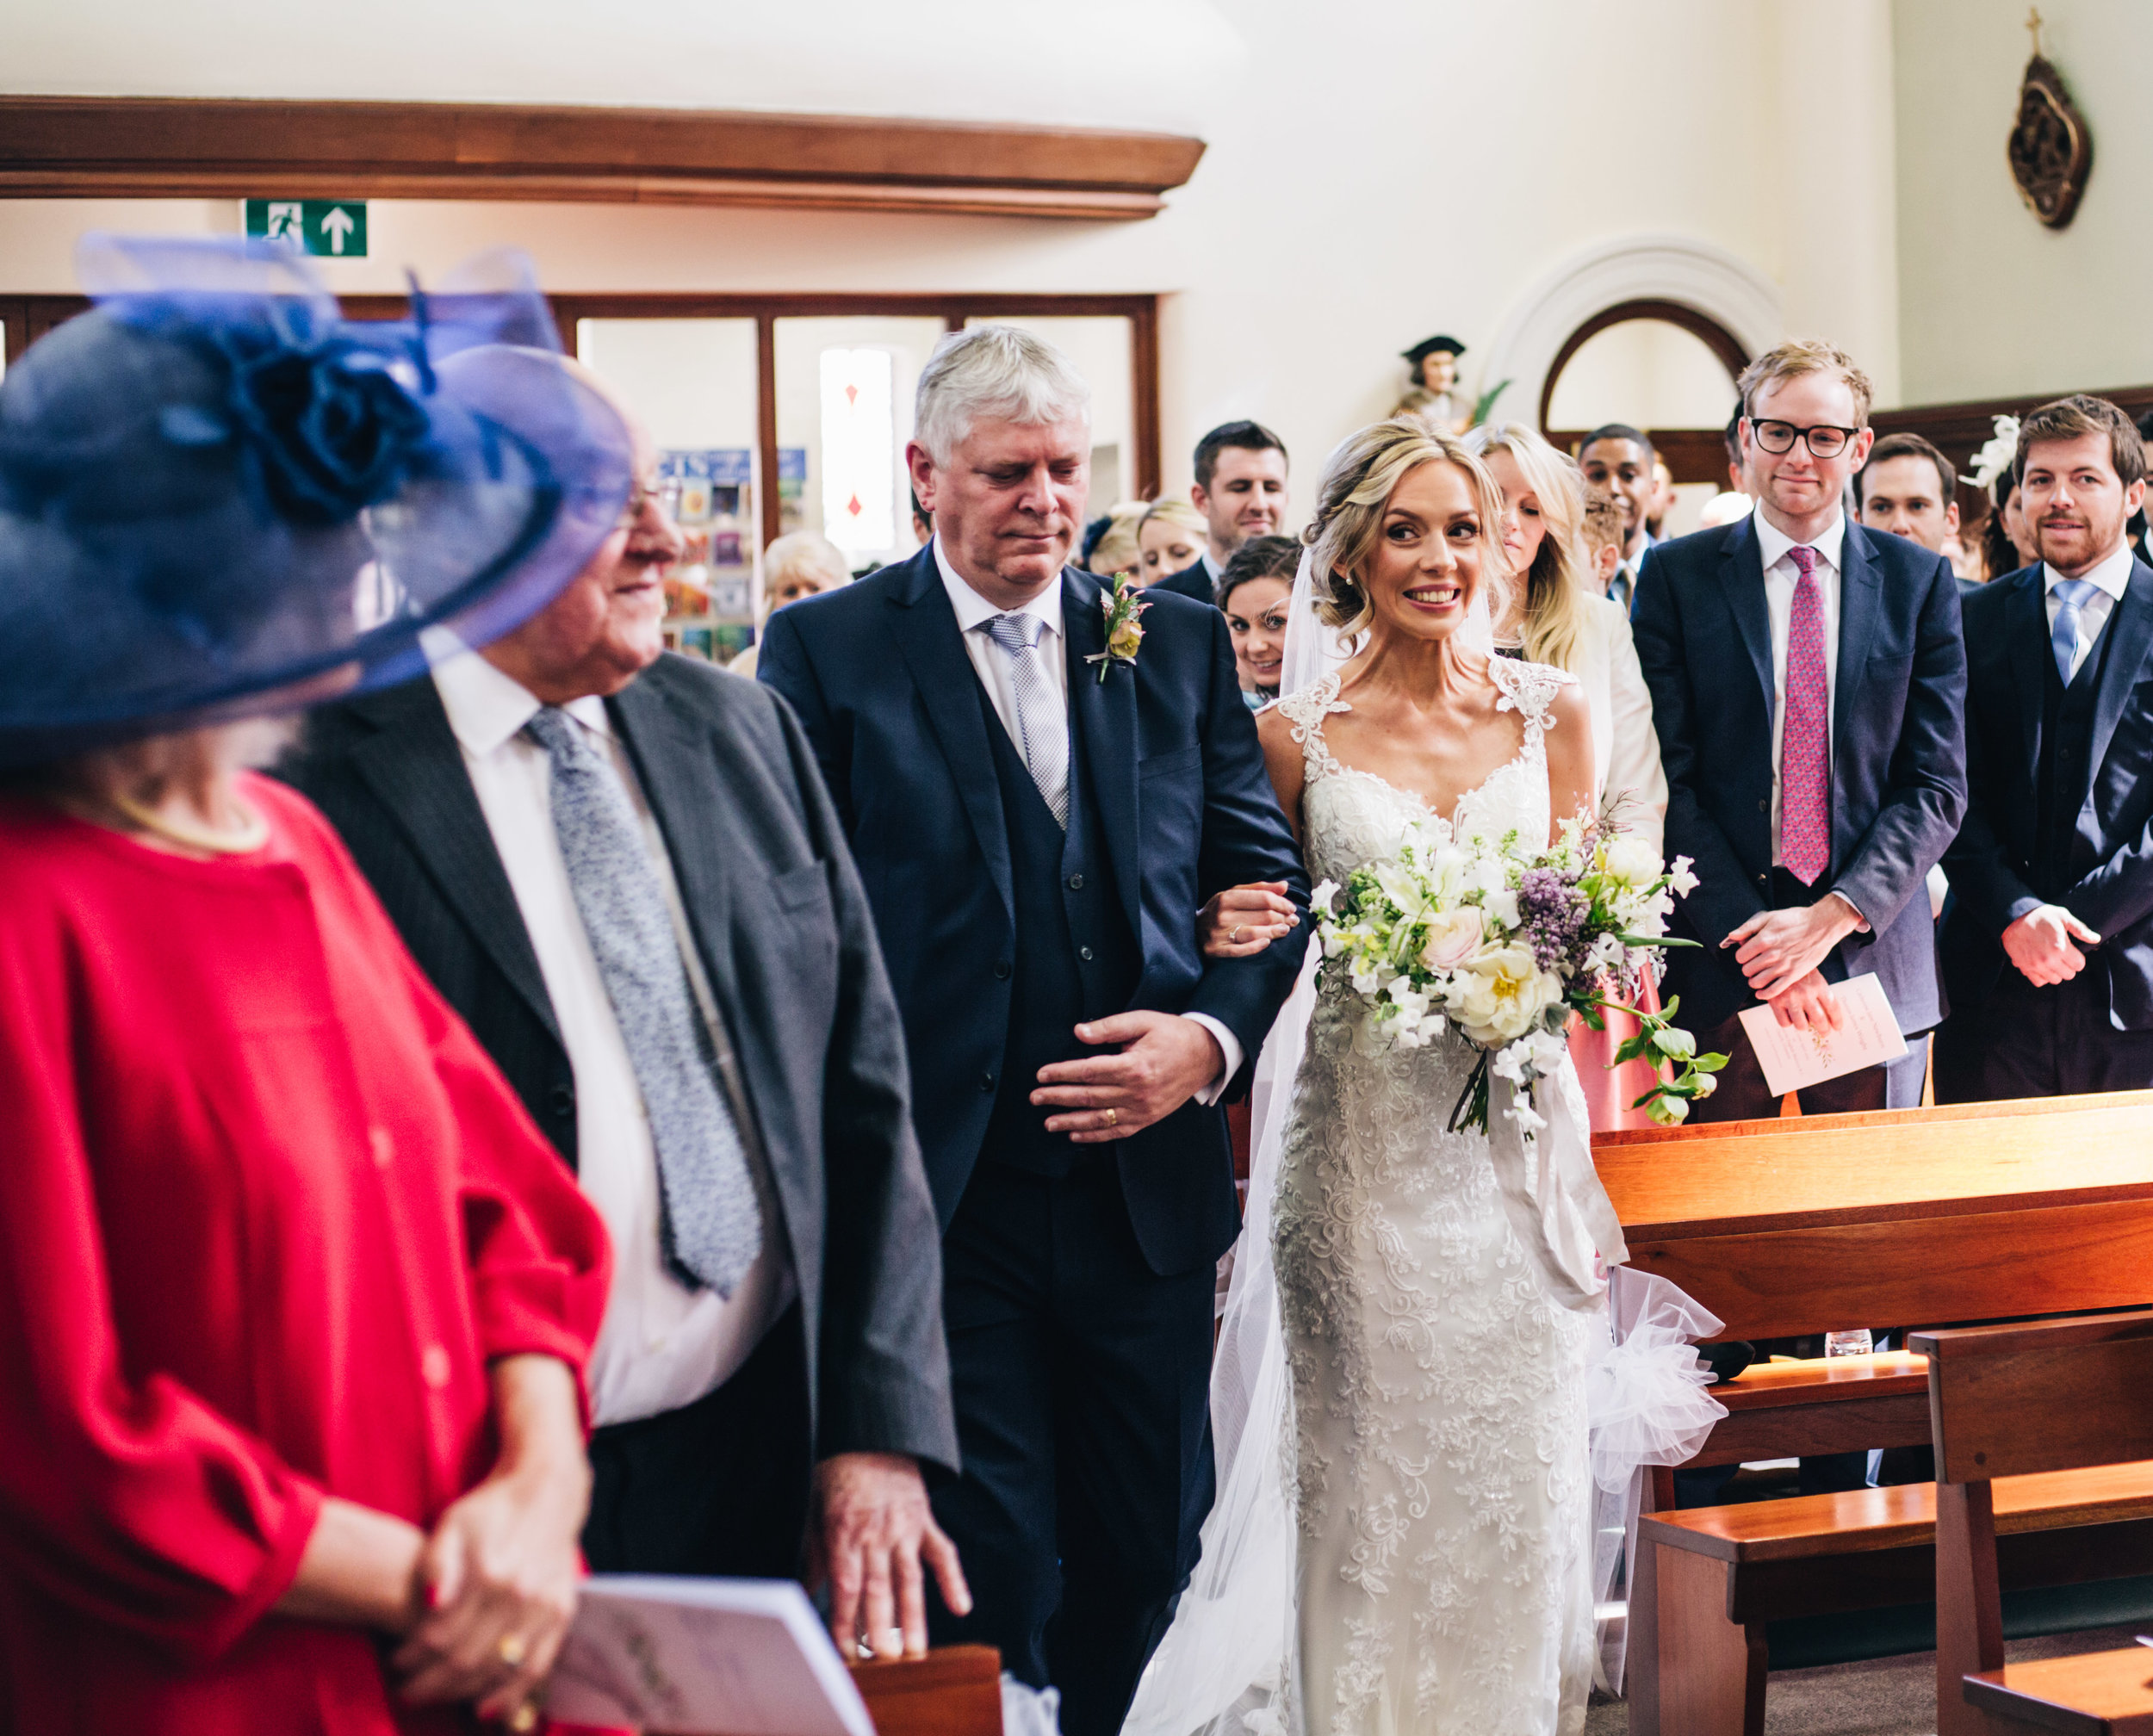 excited bride walks down the aisle - wedding photography Cheshire